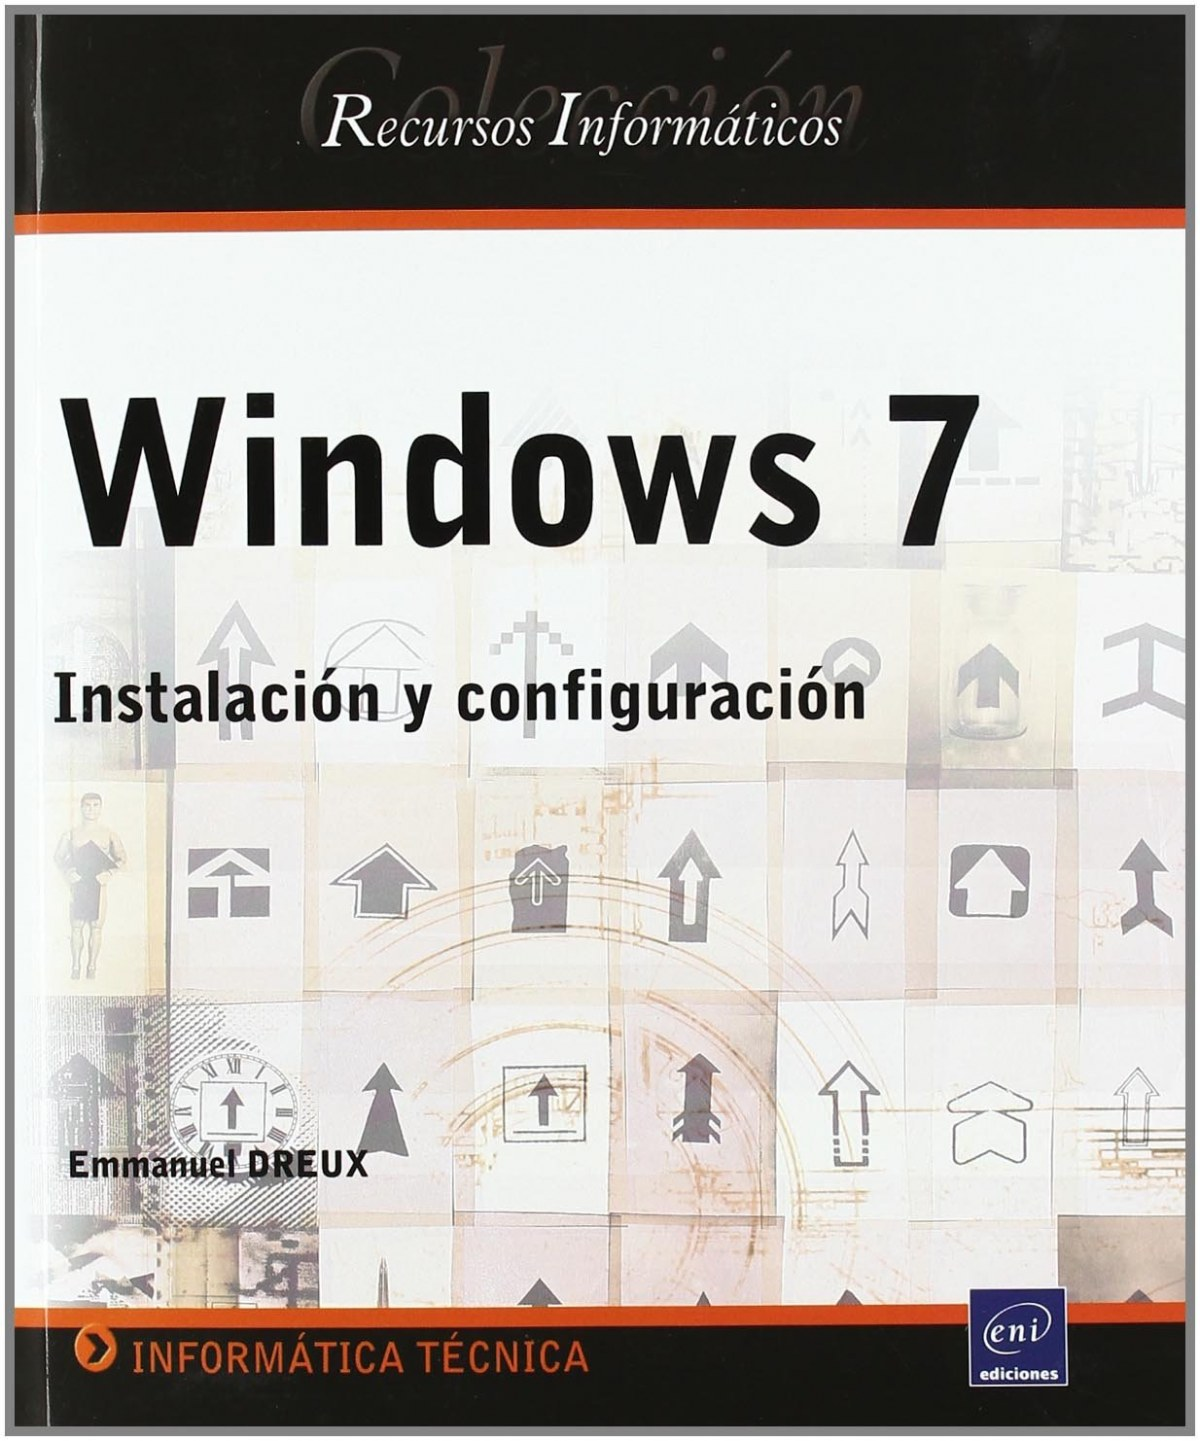 Recursos Inform. Windows 7 - Inst. y config.